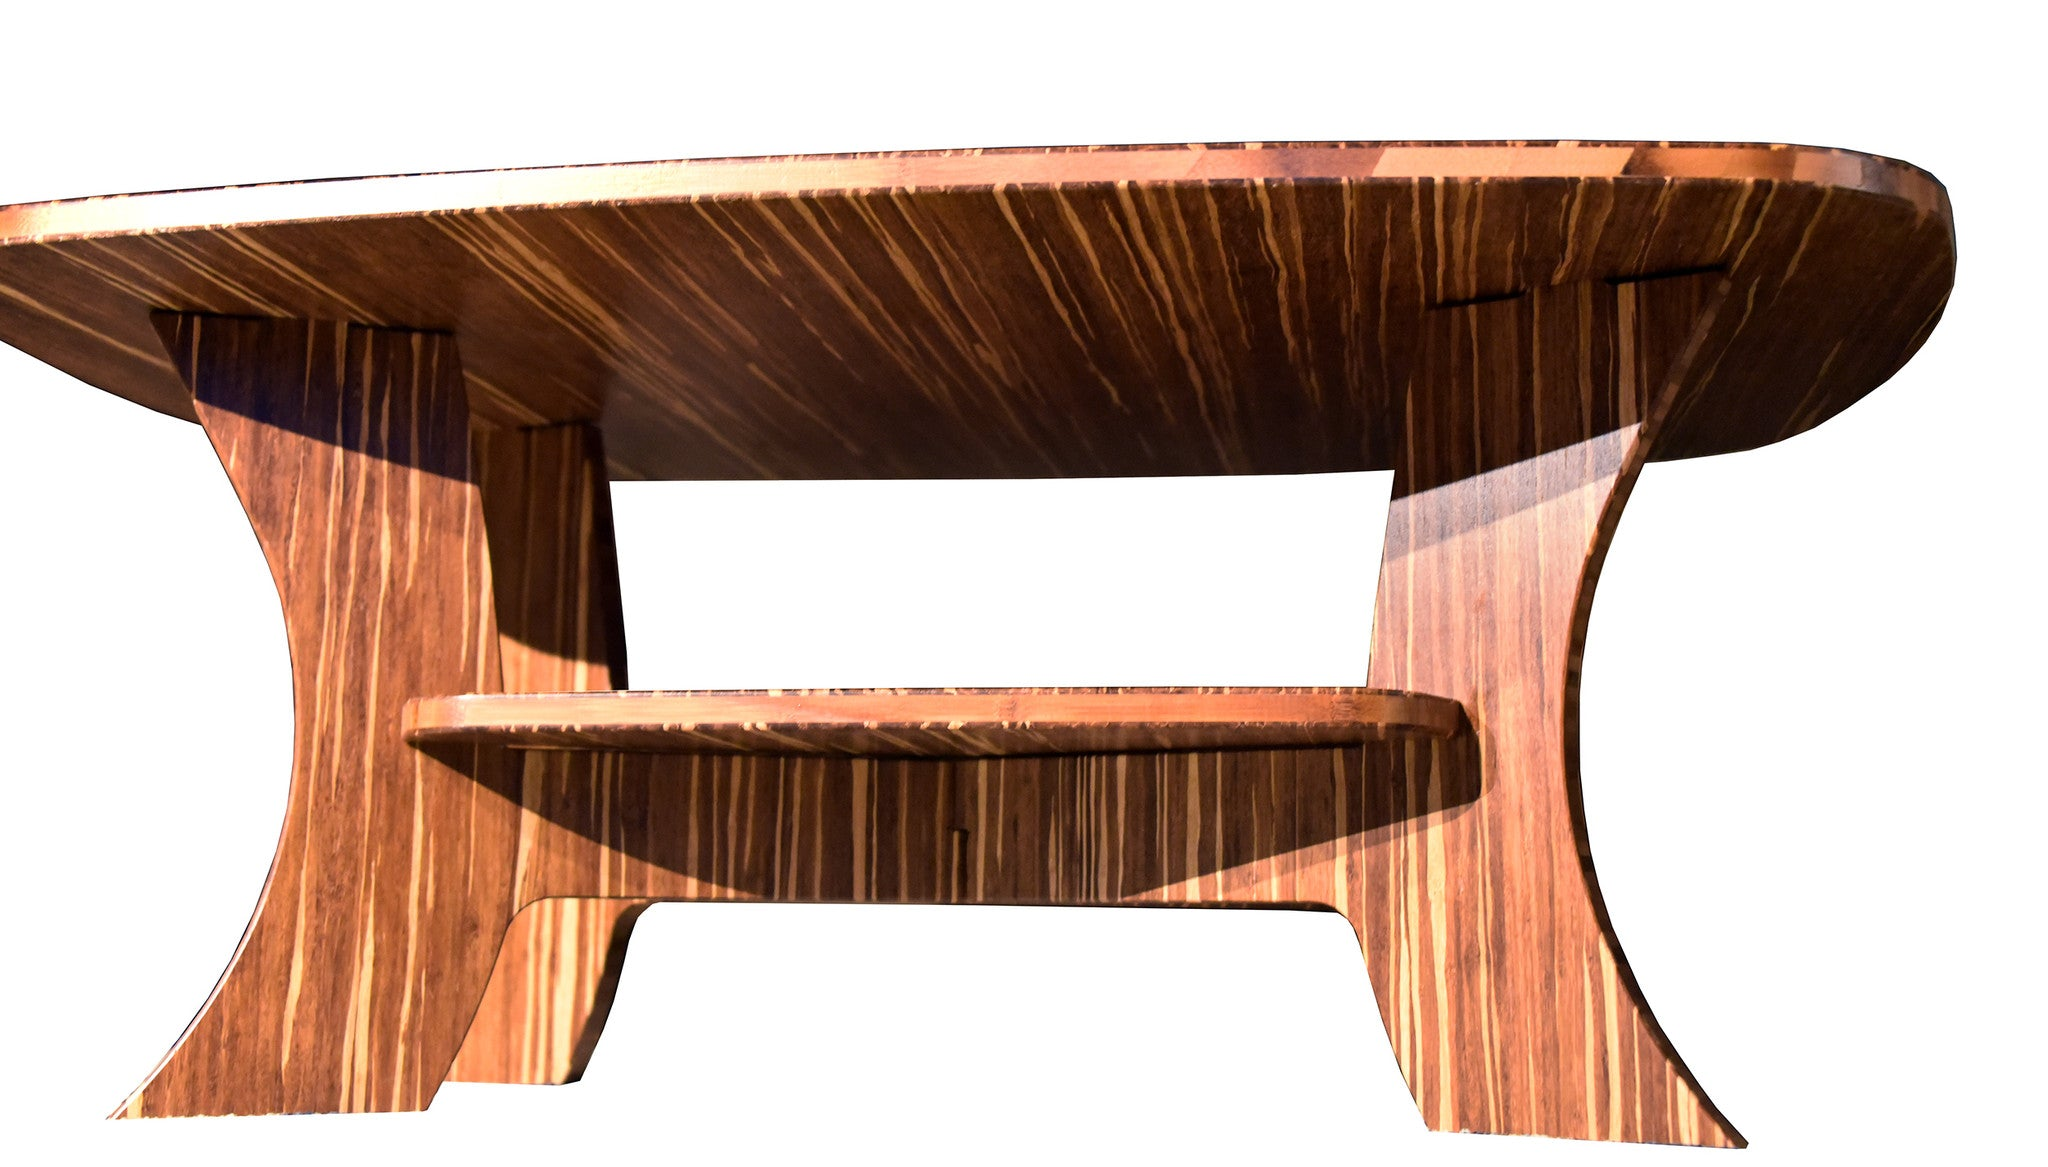 The Samurai Series - Bamboo Rectangular Coffee Table